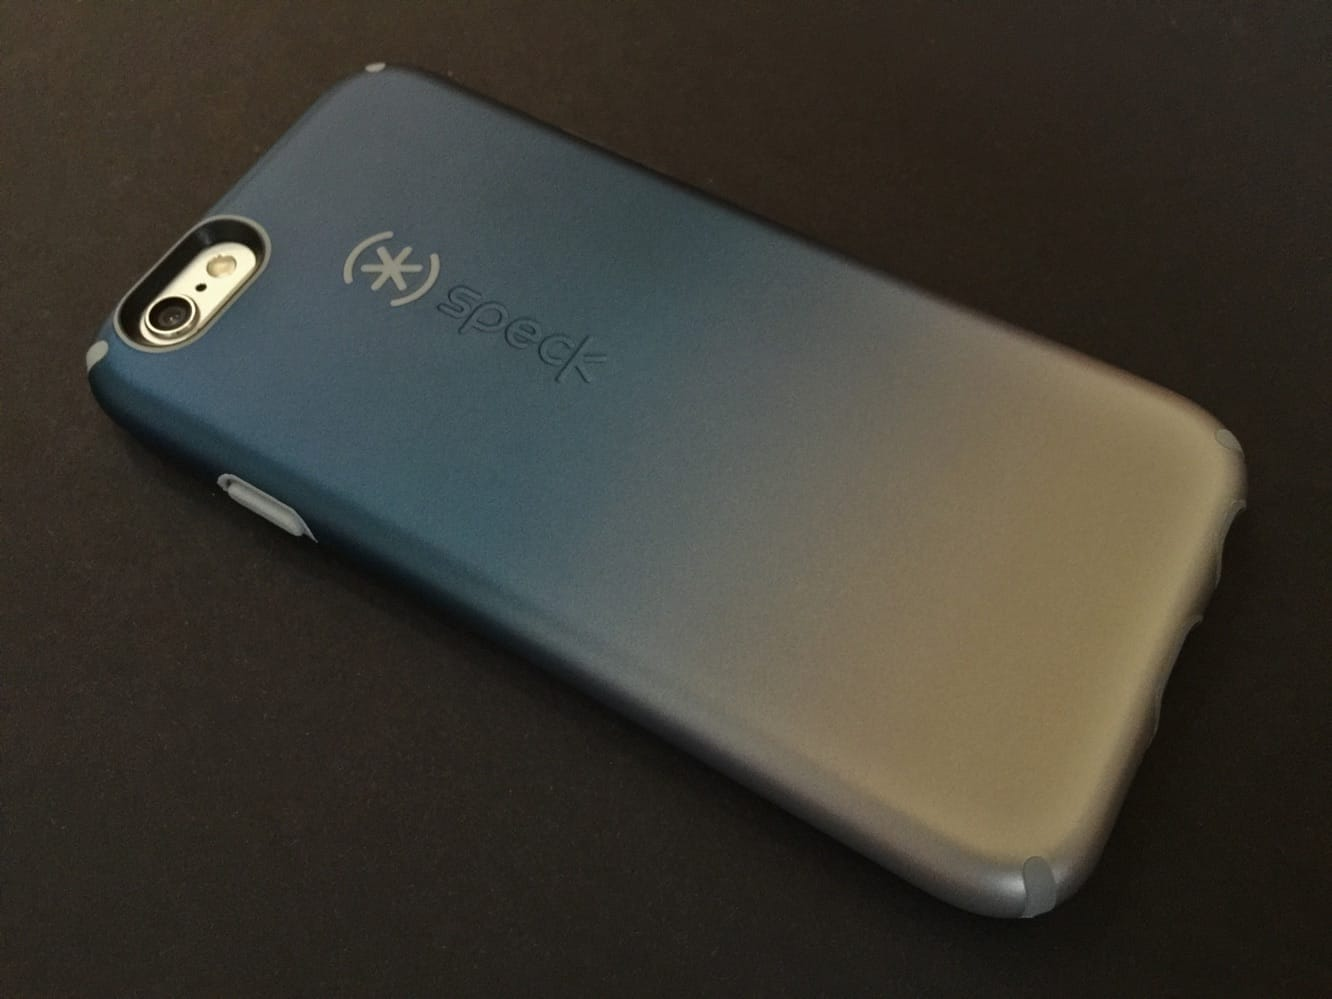 Speck CandyShell Inked Luxury Edition for iPhone 6